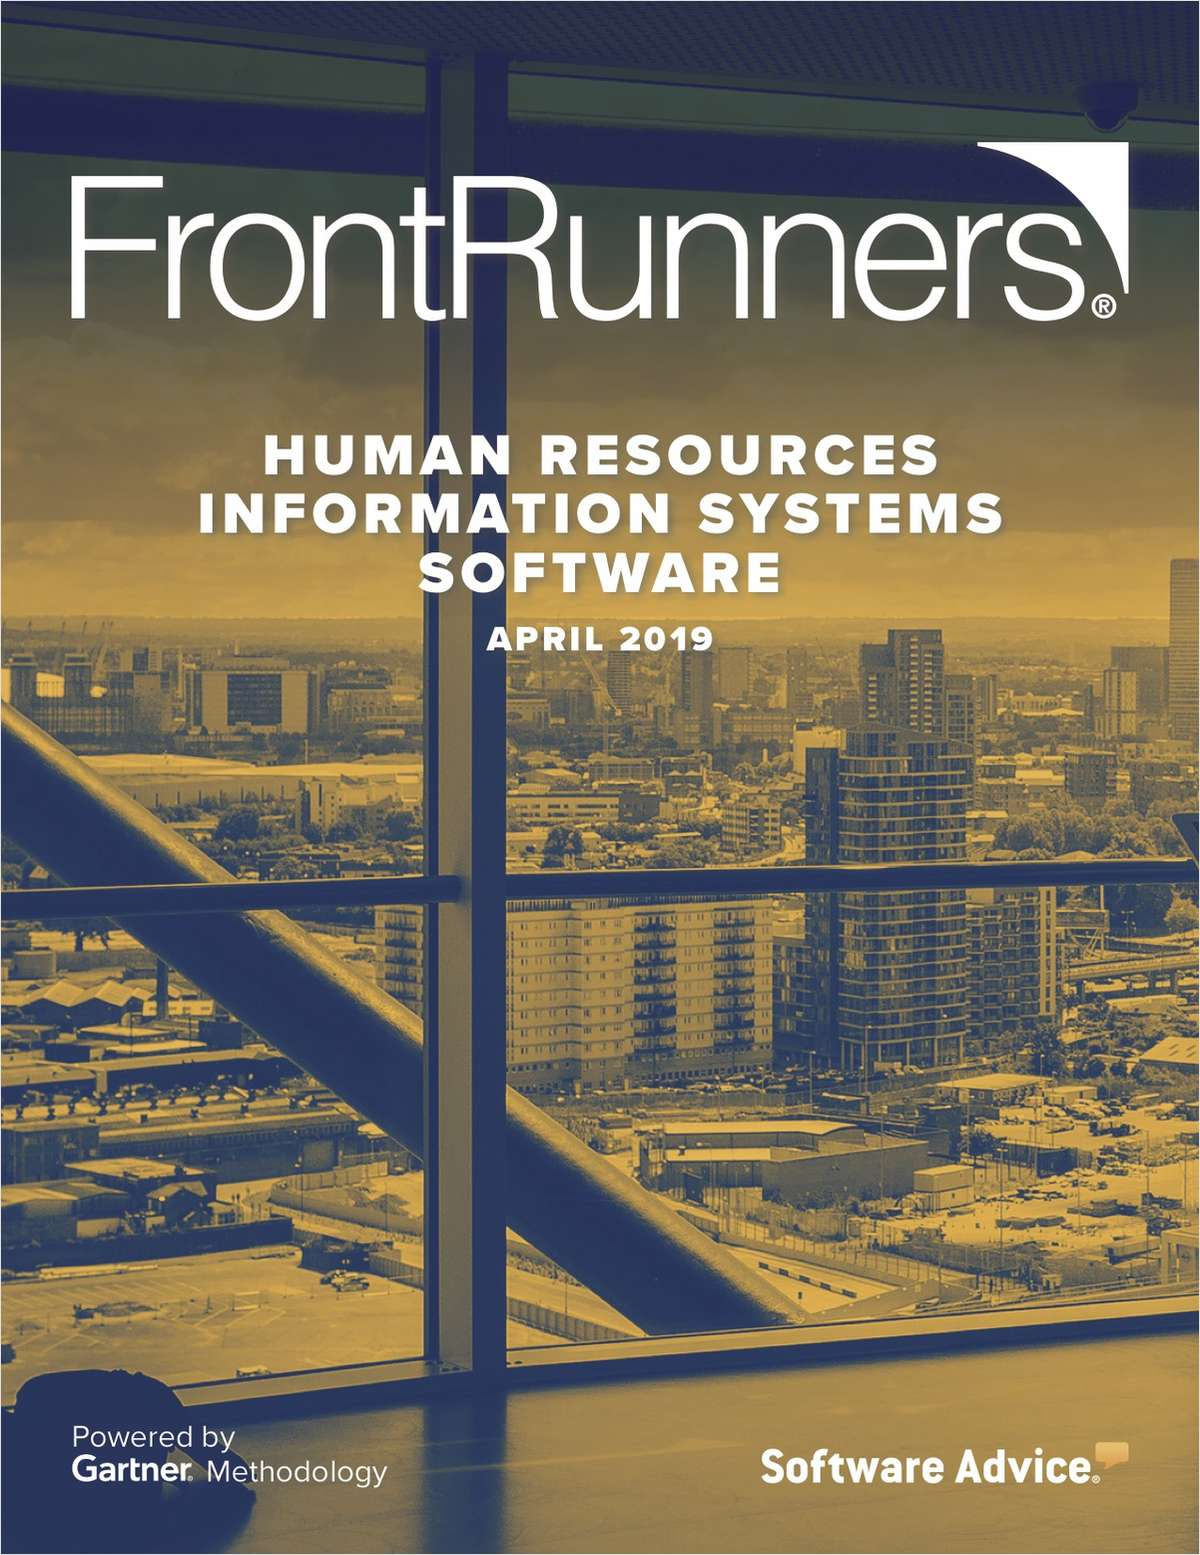 Top Rated FrontRunners for 2019 Human Resources Software